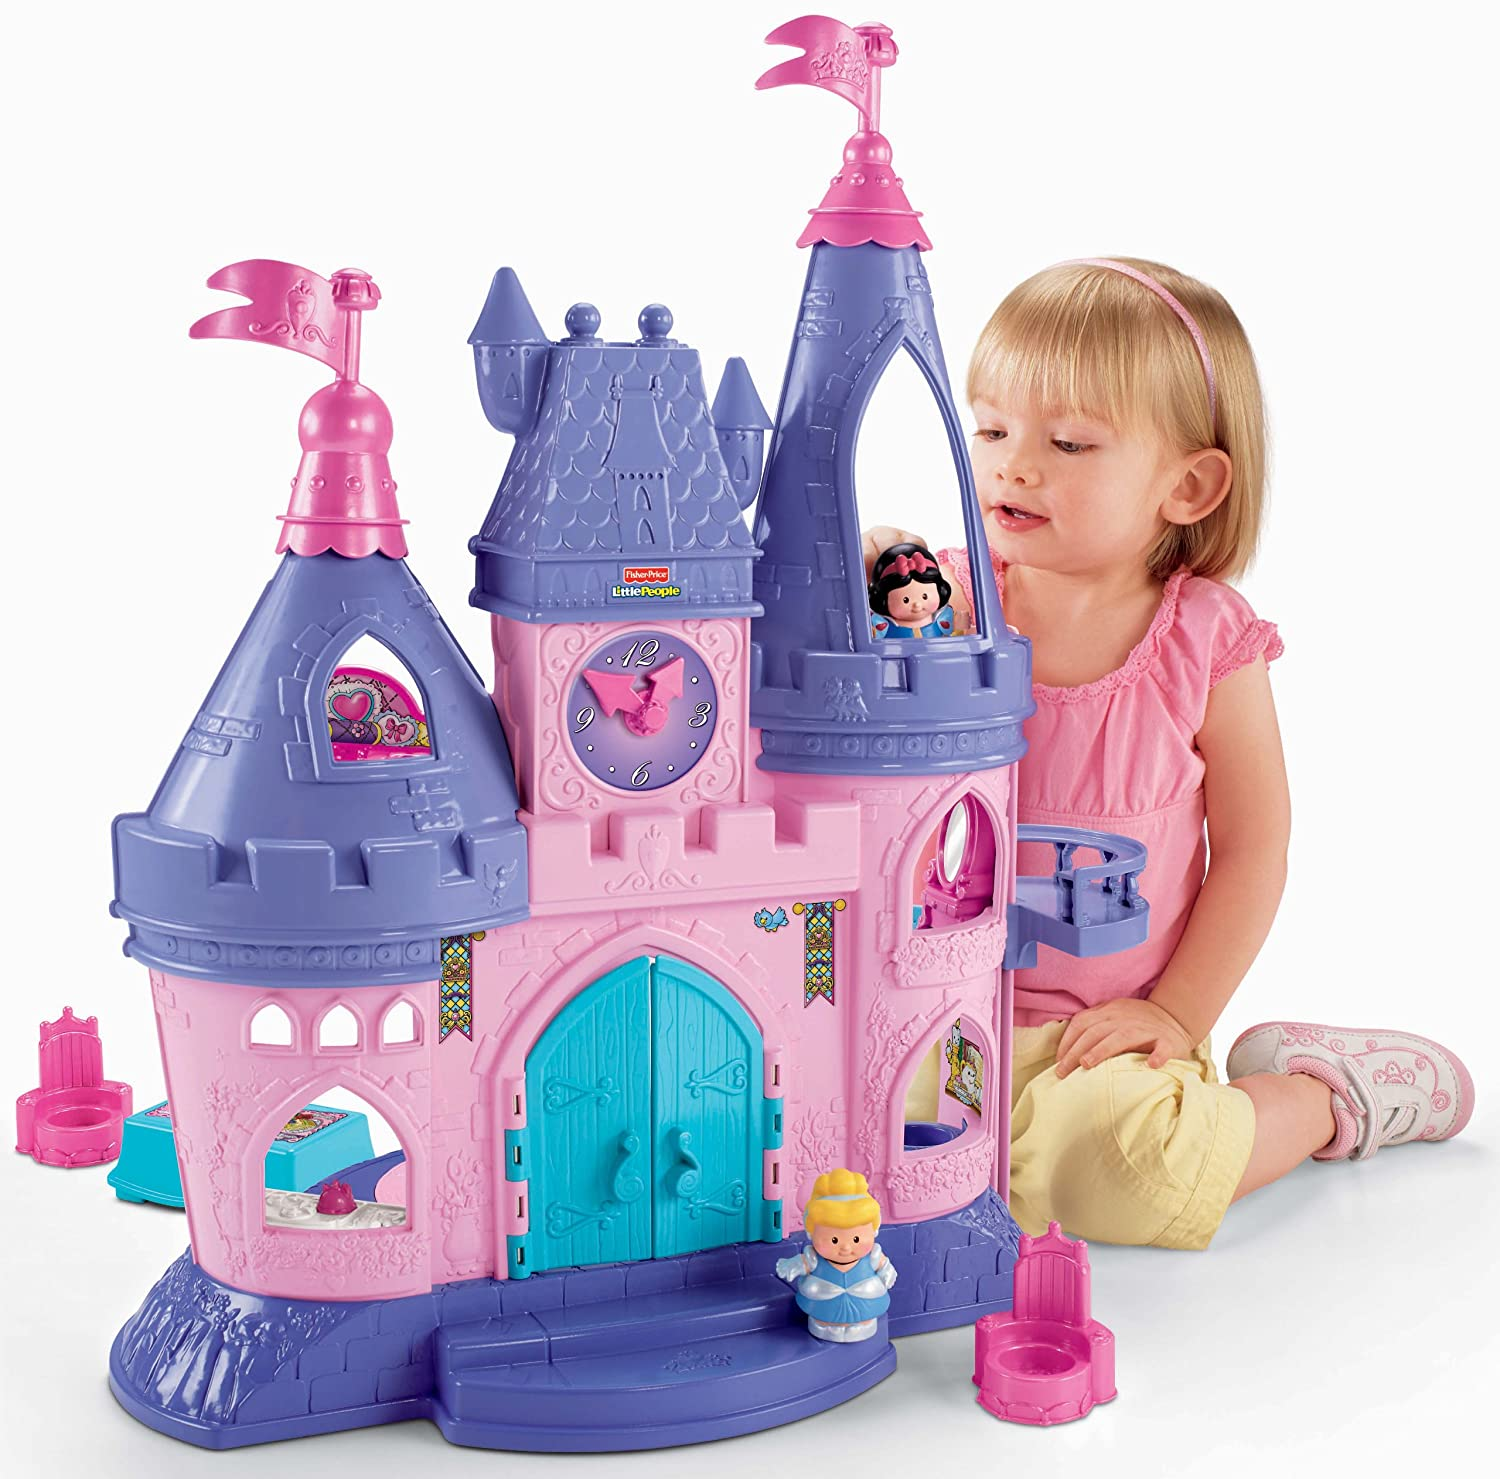 Toys Age 3 5 : Christmas gifts hot toys for toddler girls ages